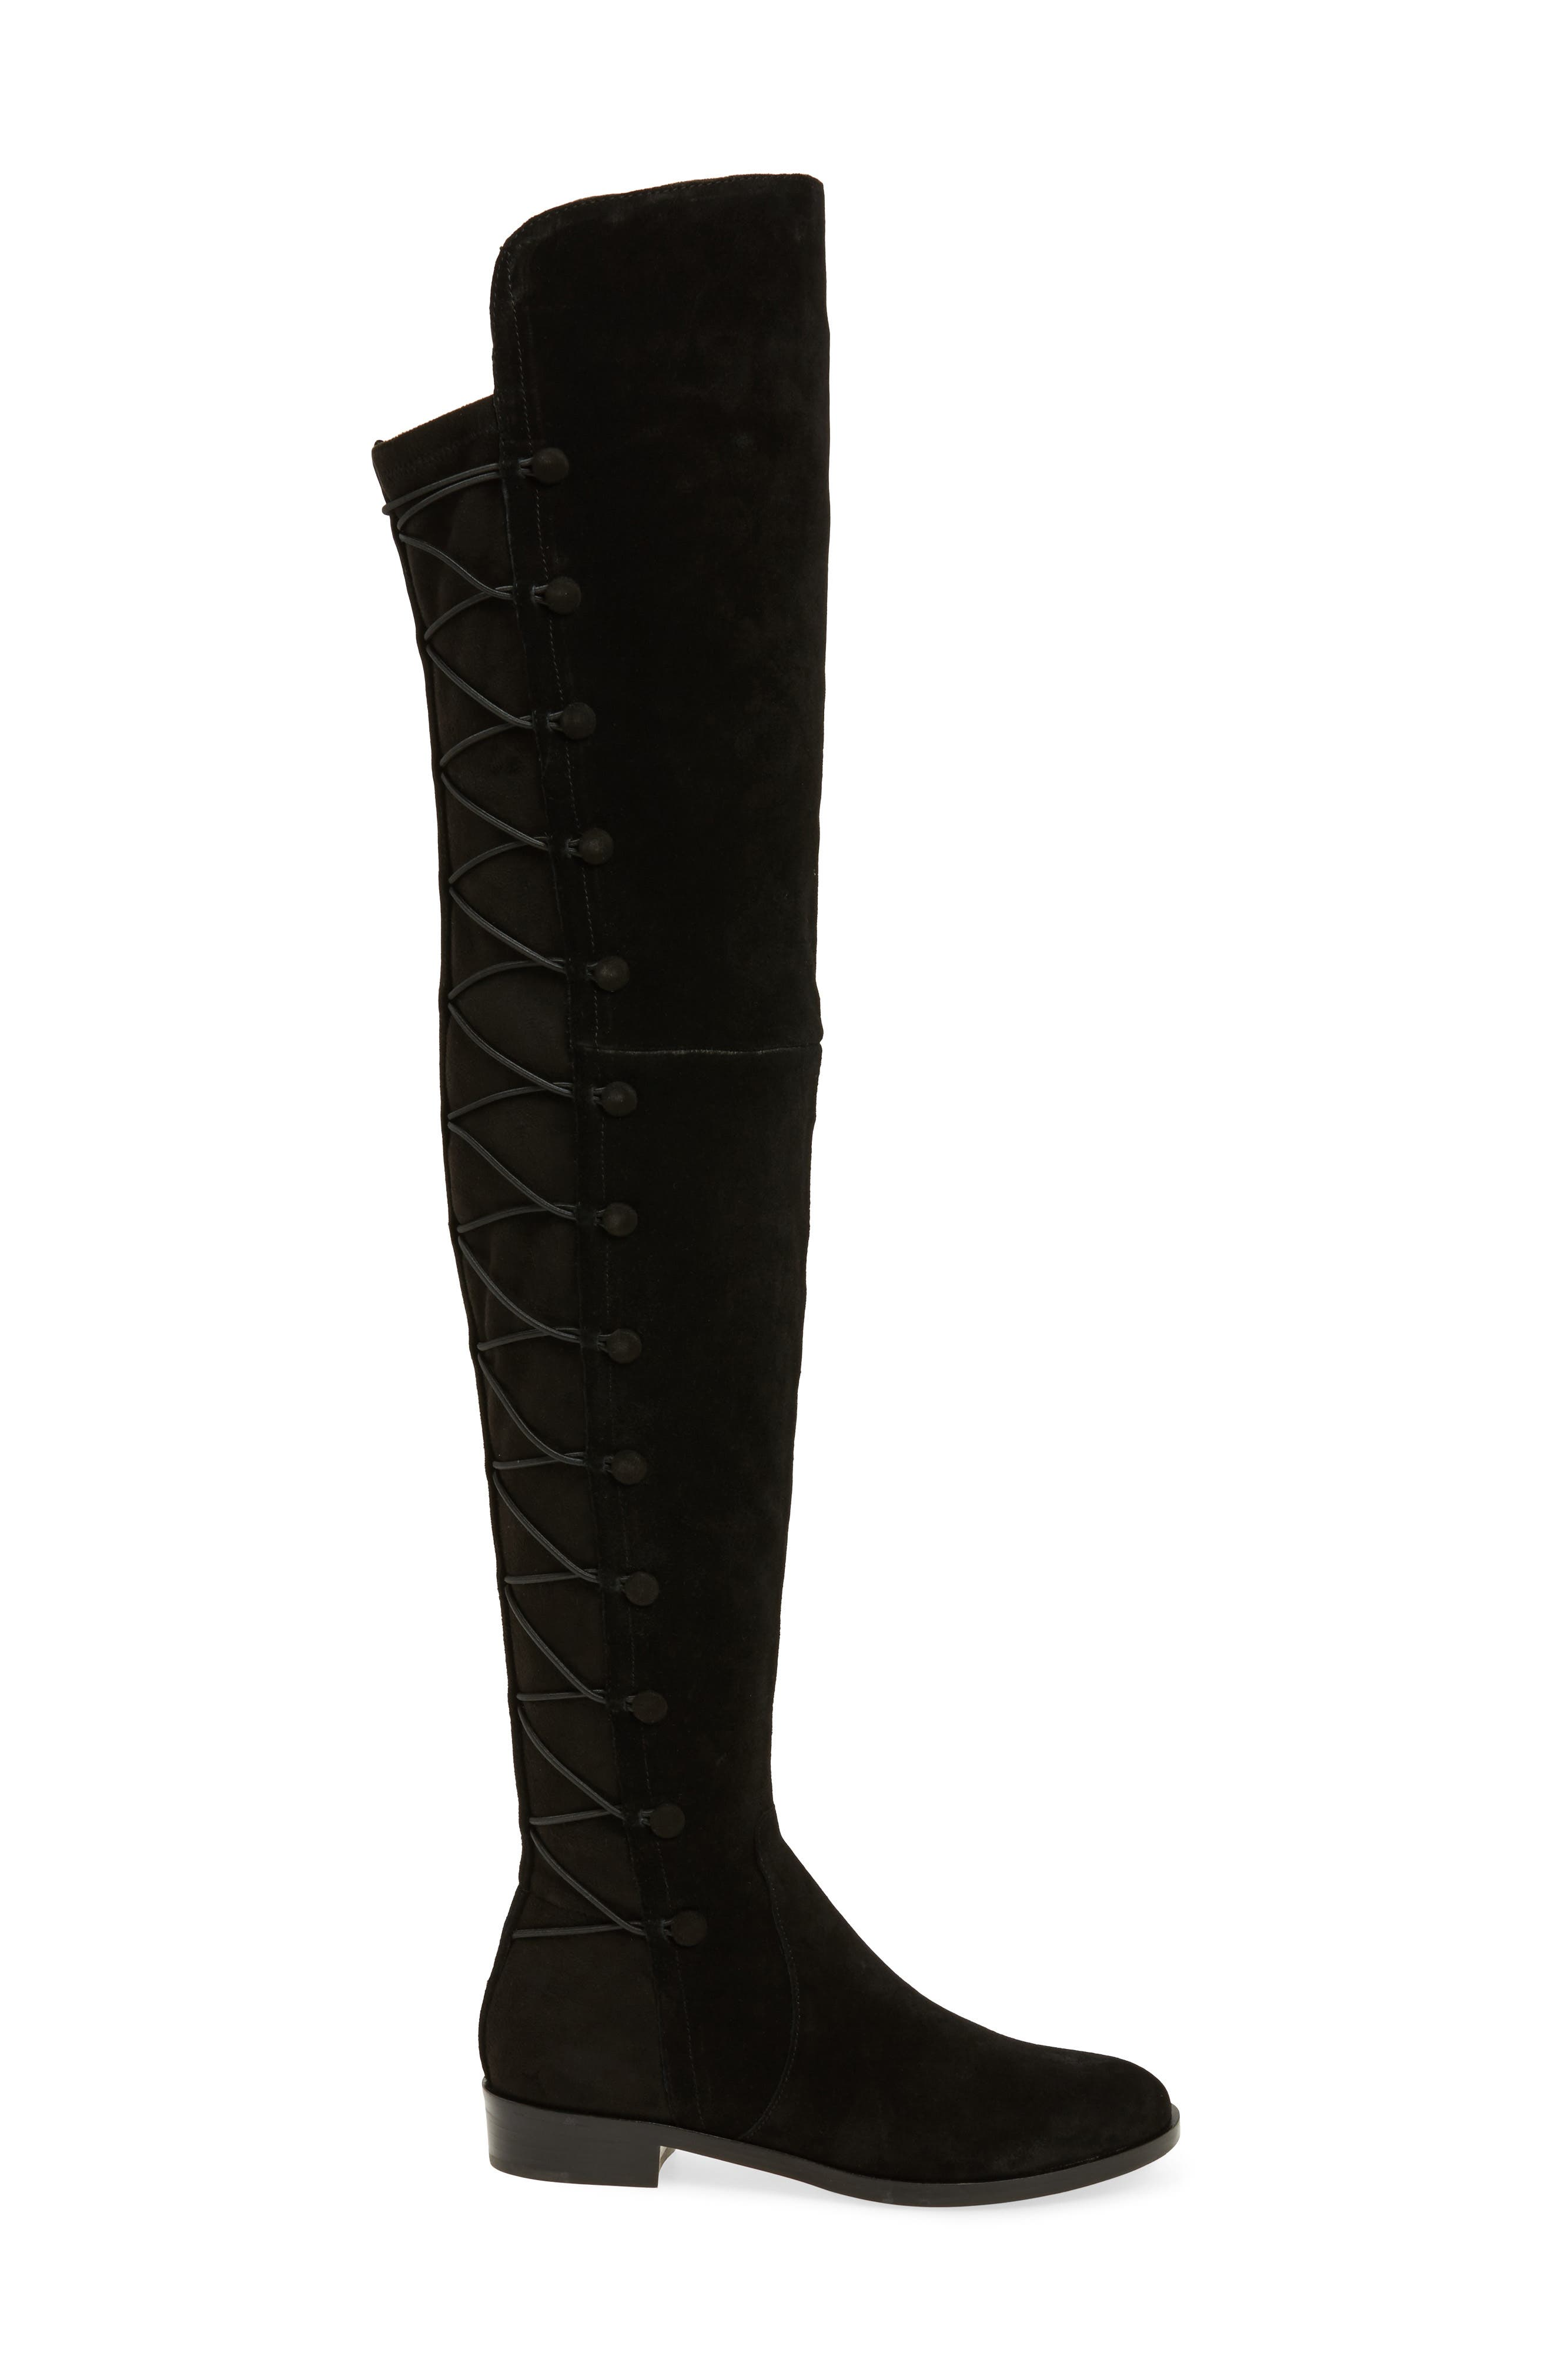 Croatia Over the Knee Boot,                             Alternate thumbnail 3, color,                             002